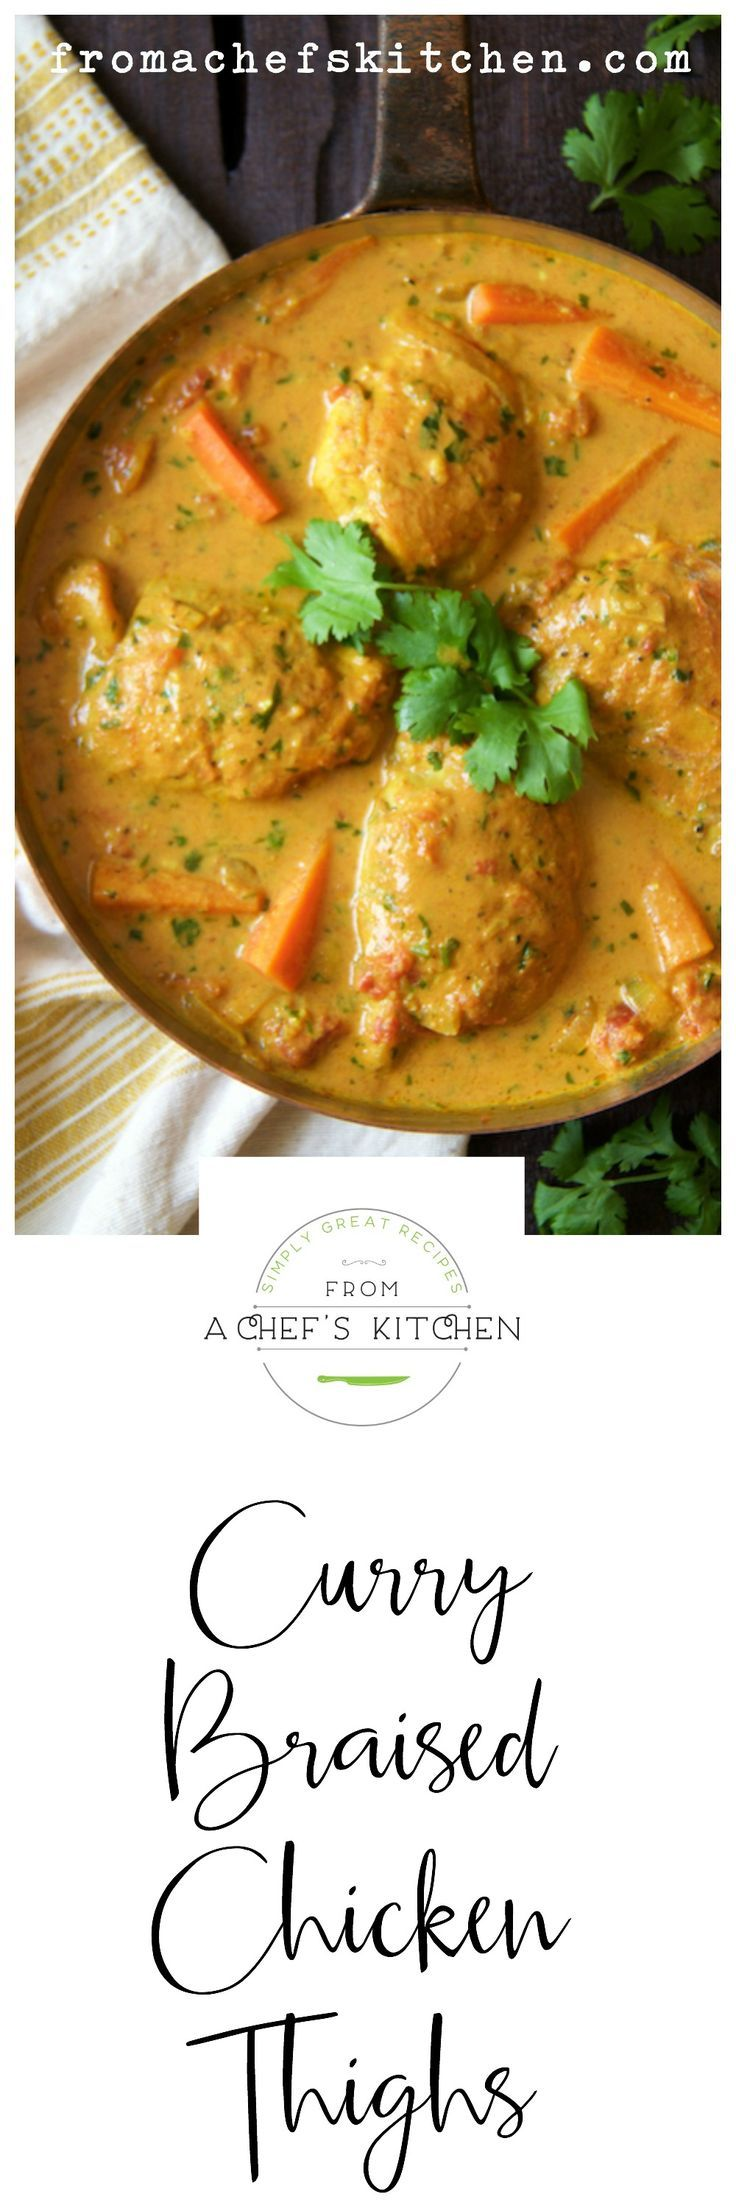 Spice up your night with these Indian-inspired Curry Braised Chicken Thighs!